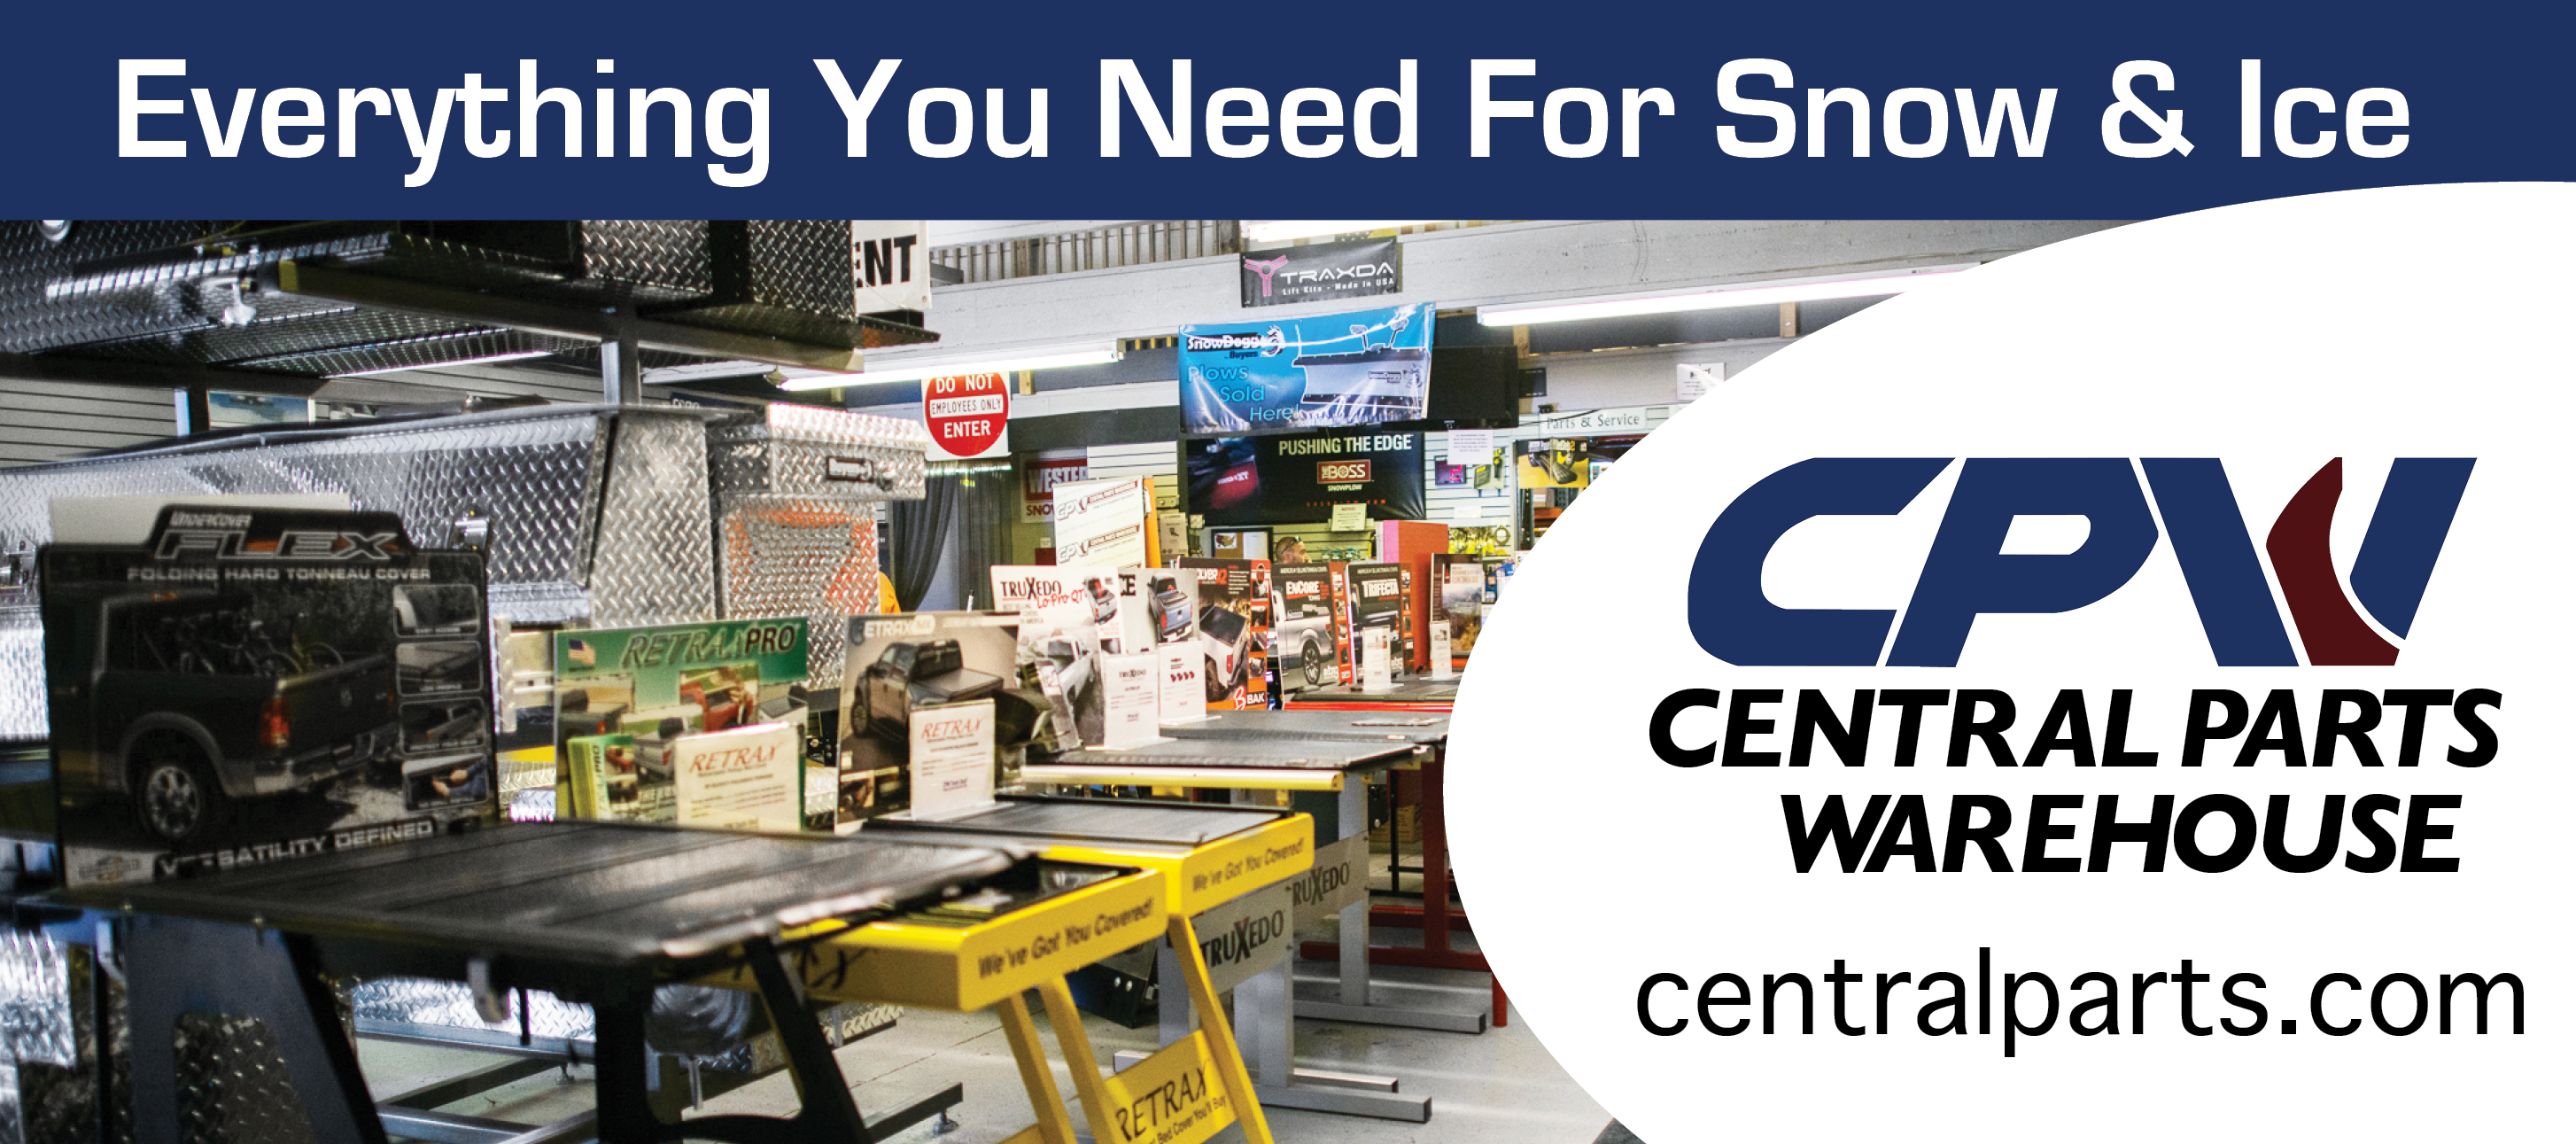 Central Parts Warehouse The 1 Source For All Your Snow Ice Snowdogg Wiring Harness 2006 Chevy Apply To Be A Reseller